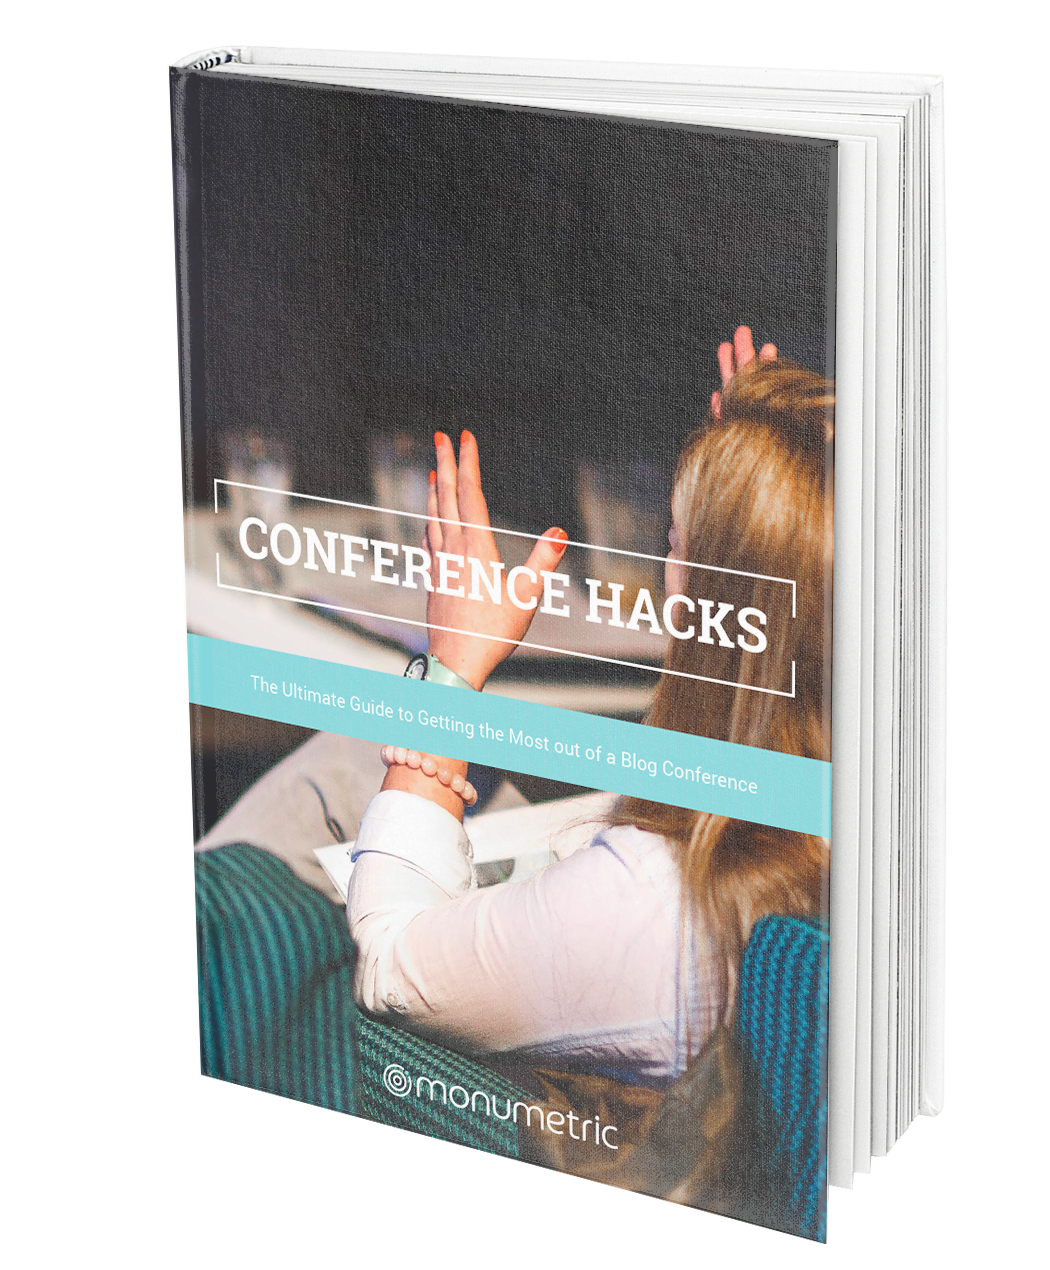 CONFERENCE HACKS eBOOK BlogConferenceBook MockUp